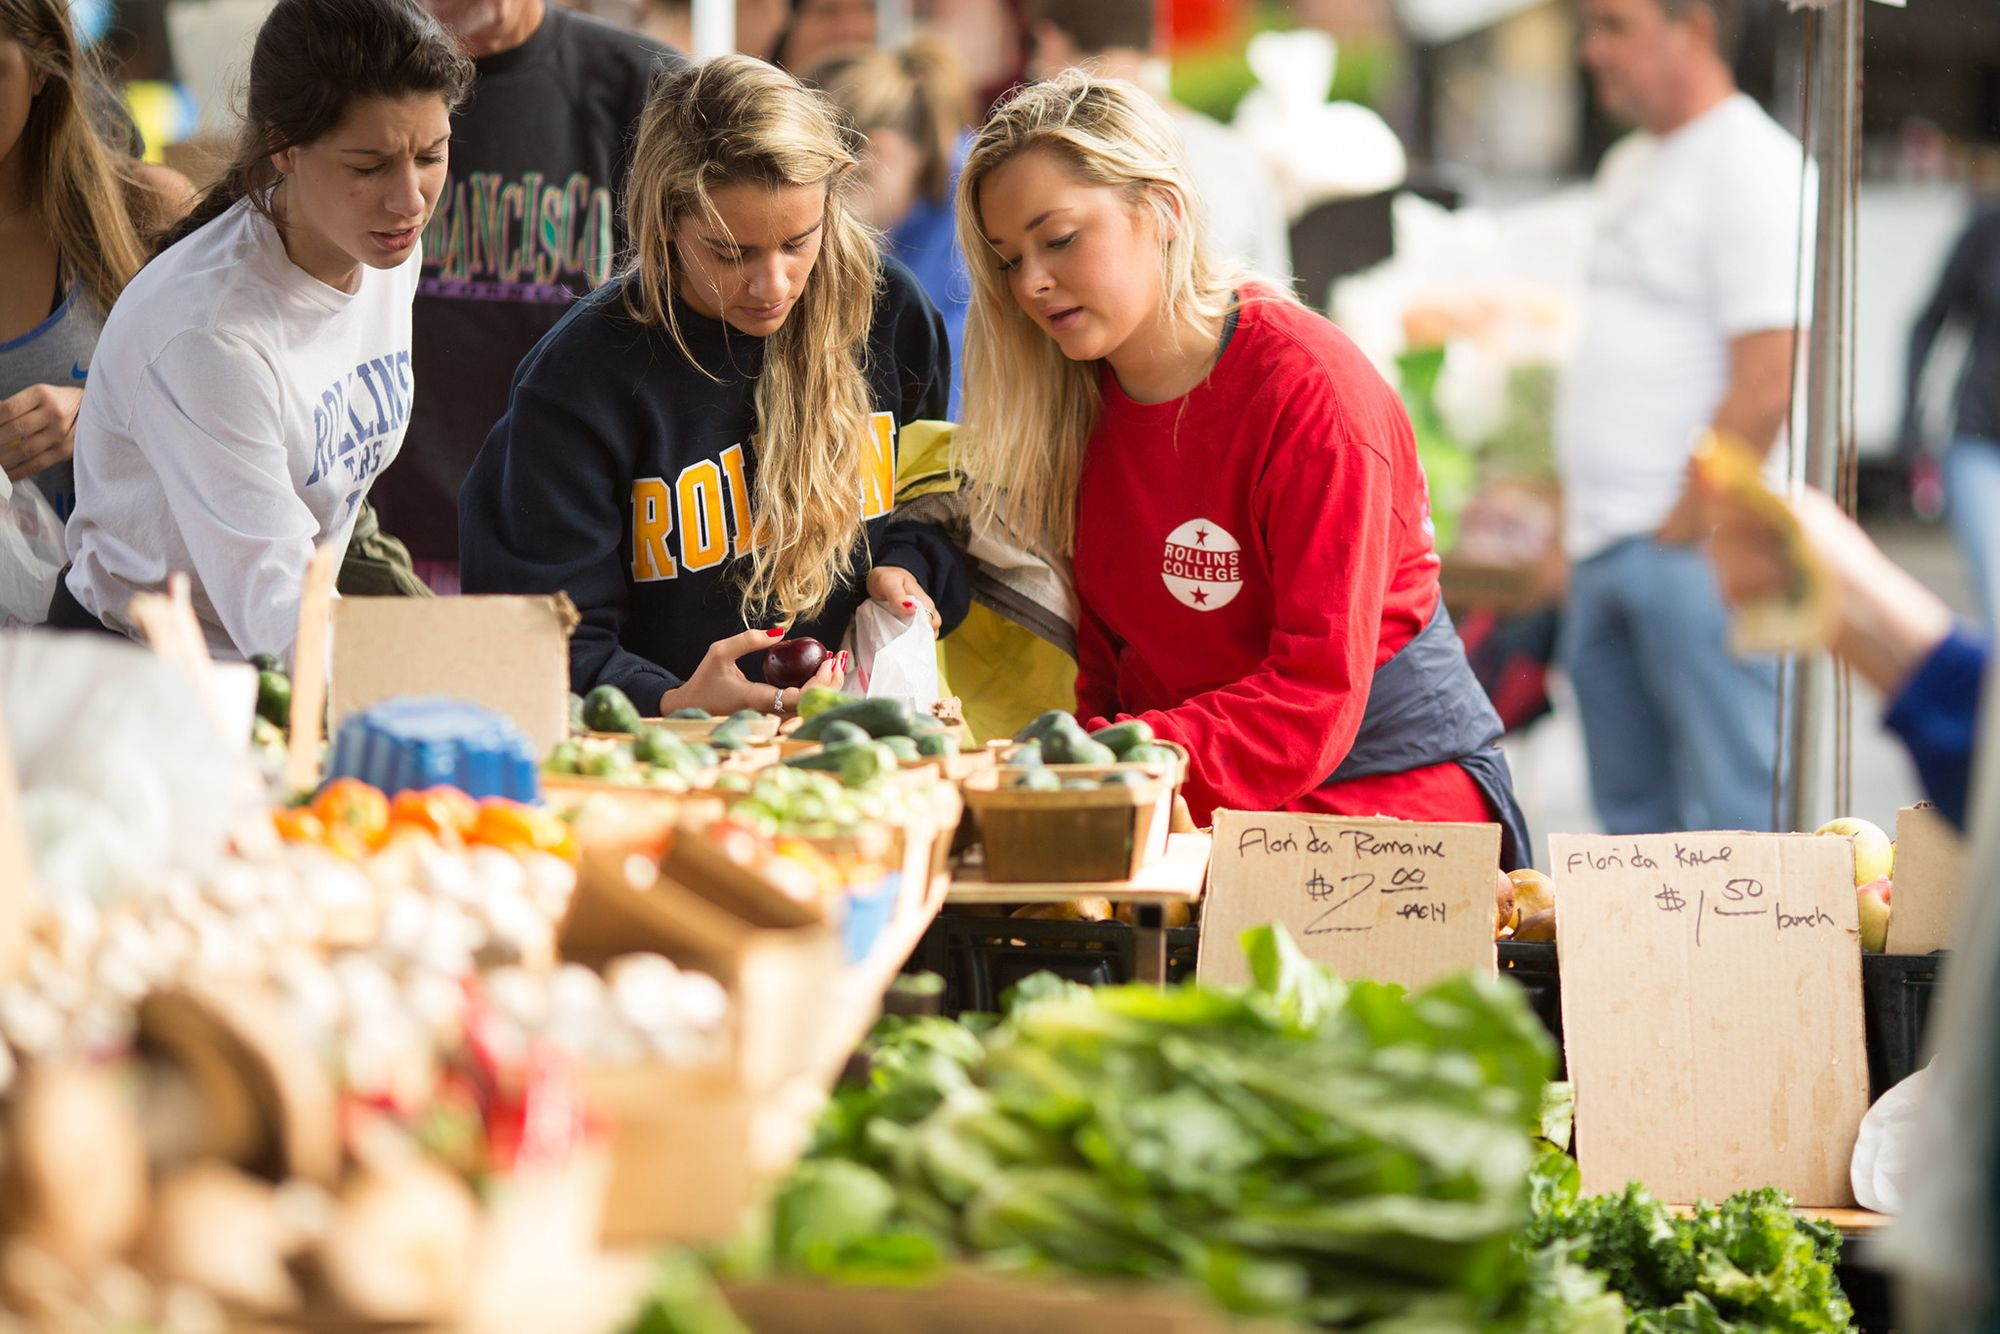 Three students shop for produce at the Winter Park Farmer's market.